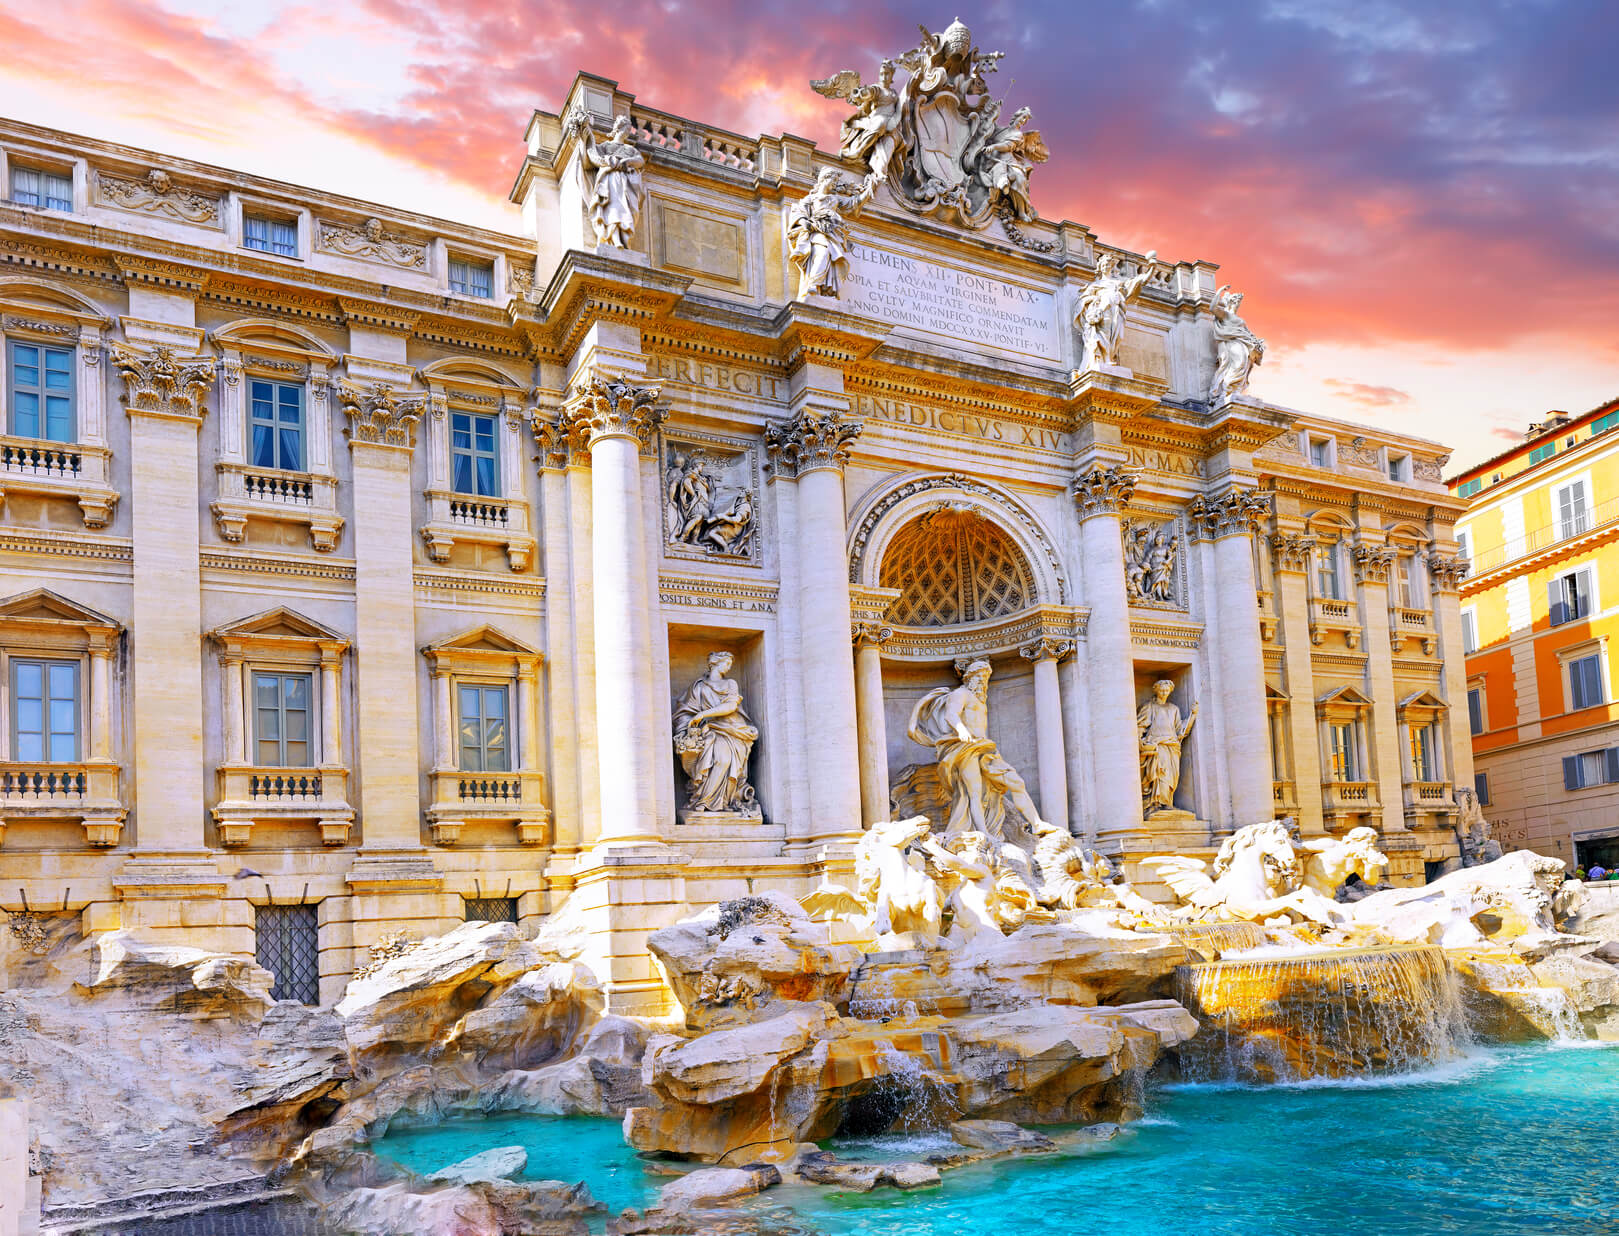 New York to Rome, Italy for only $311 roundtrip